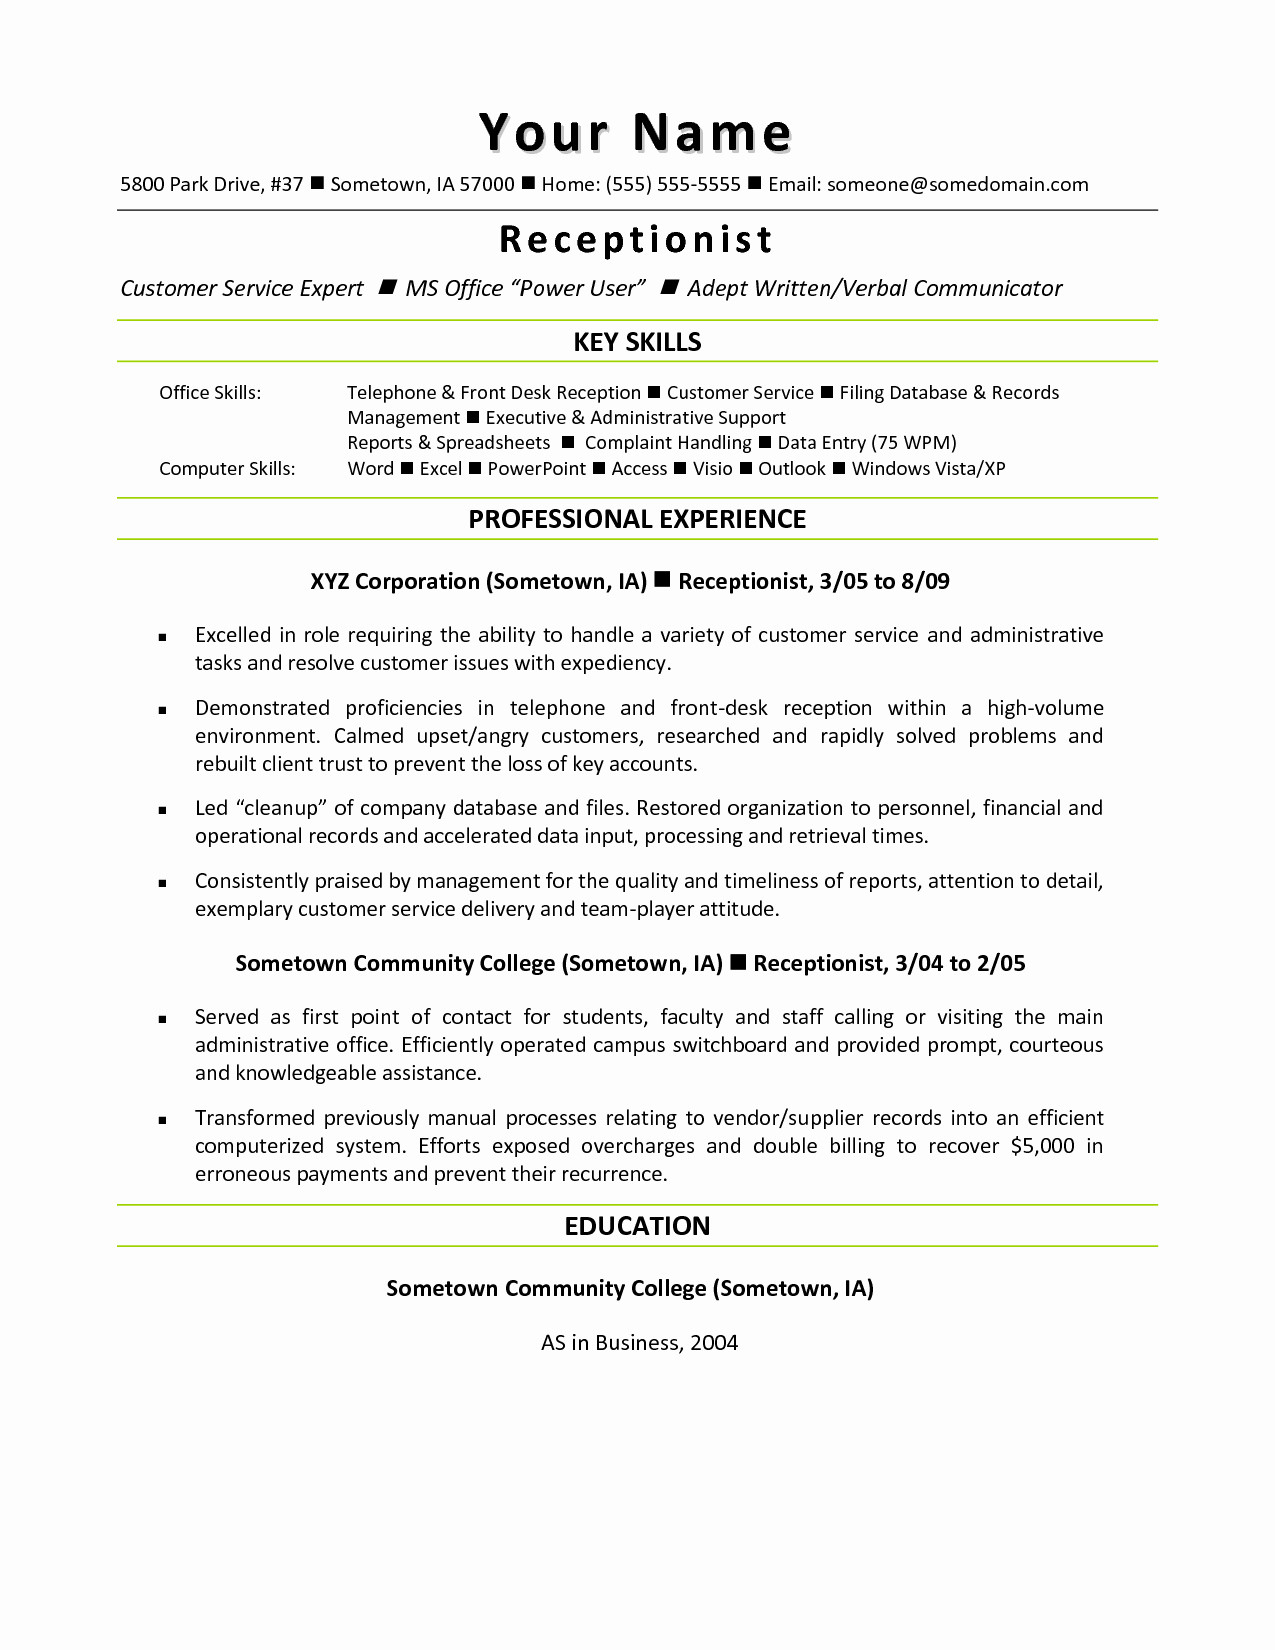 Cover Letter Template for Medical Office assistant - Unique Secretary Resume Templates